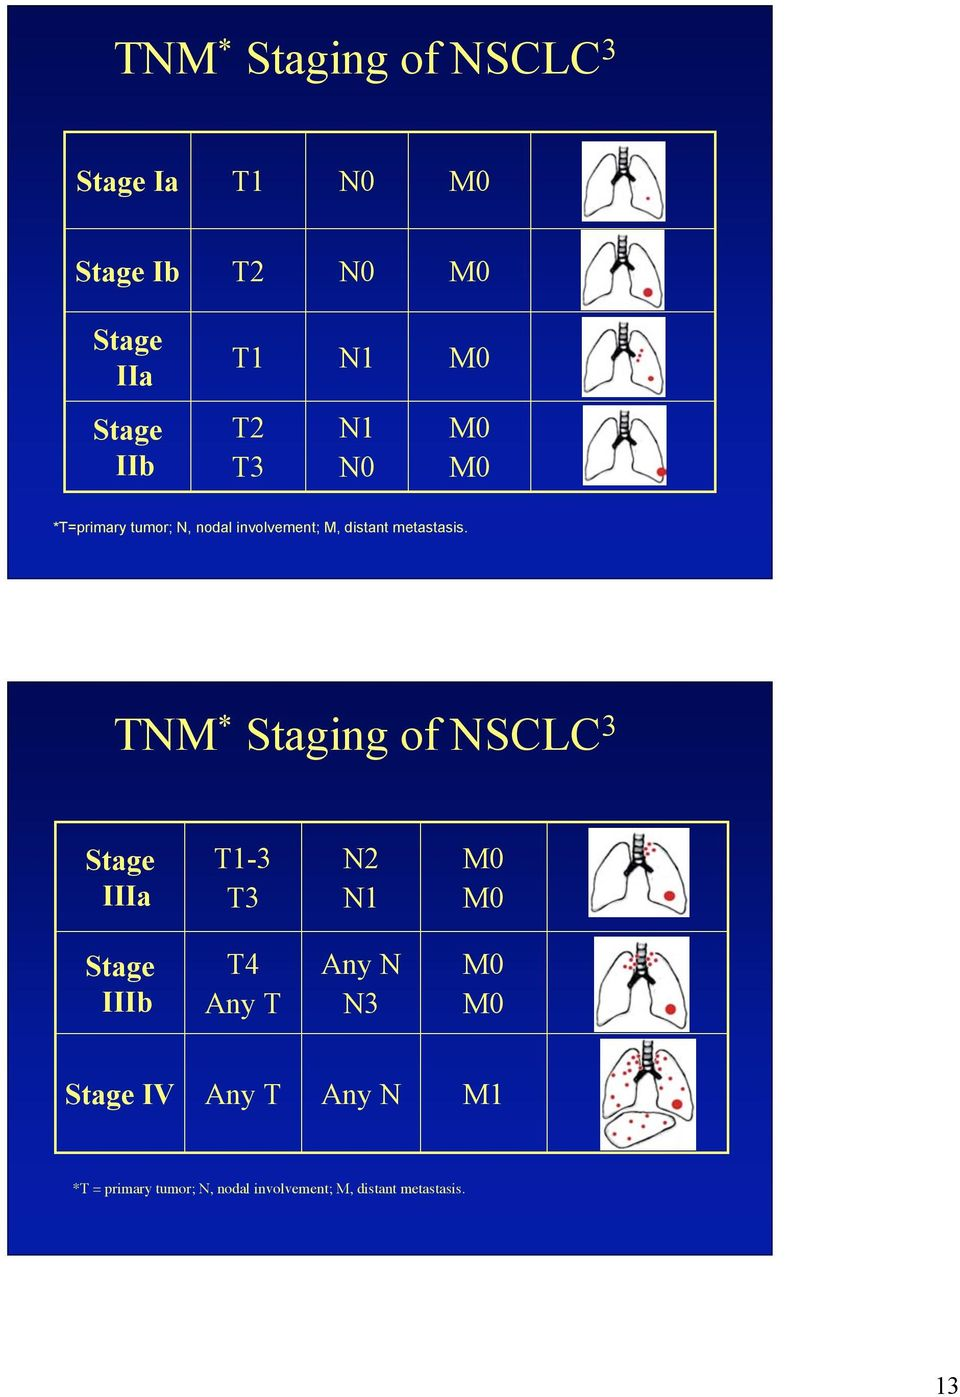 TNM * Staging of NSCLC 3 Stage IIIa T1-3 T3 N2 N1 M0 M0 Stage IIIb T4 Any T Any N N3 M0